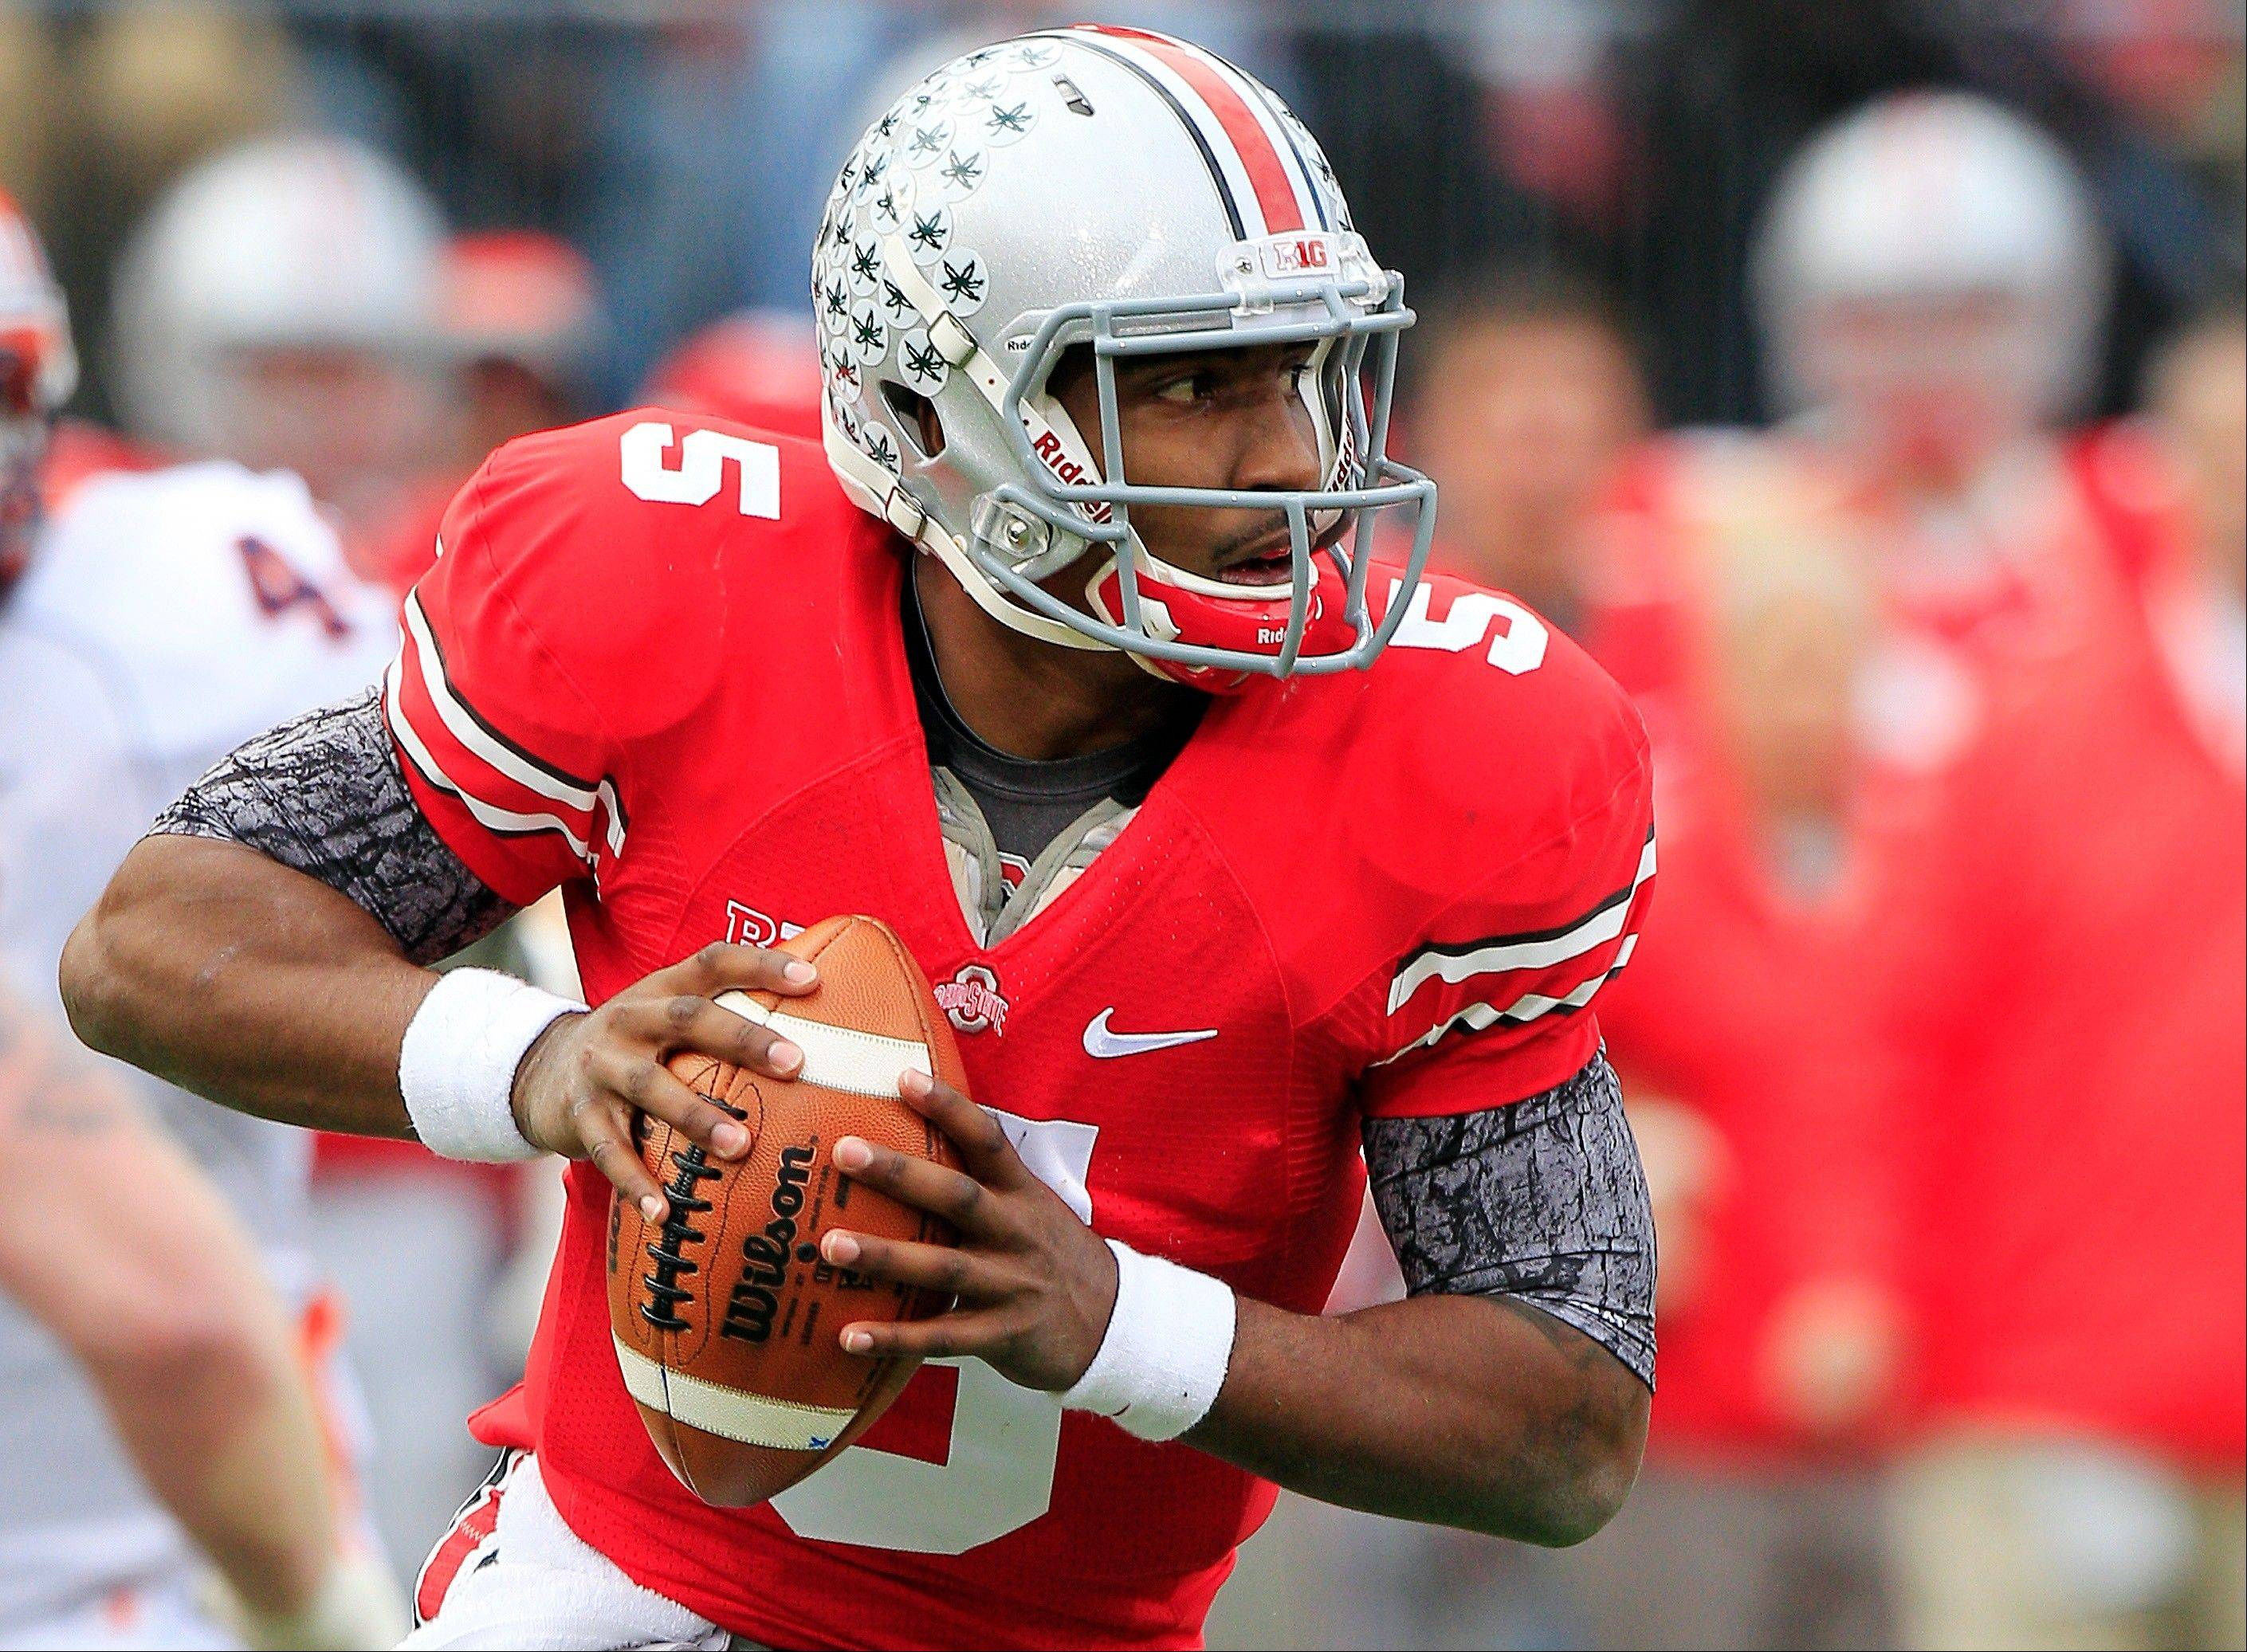 Miller feels at home as Ohio State's star QB